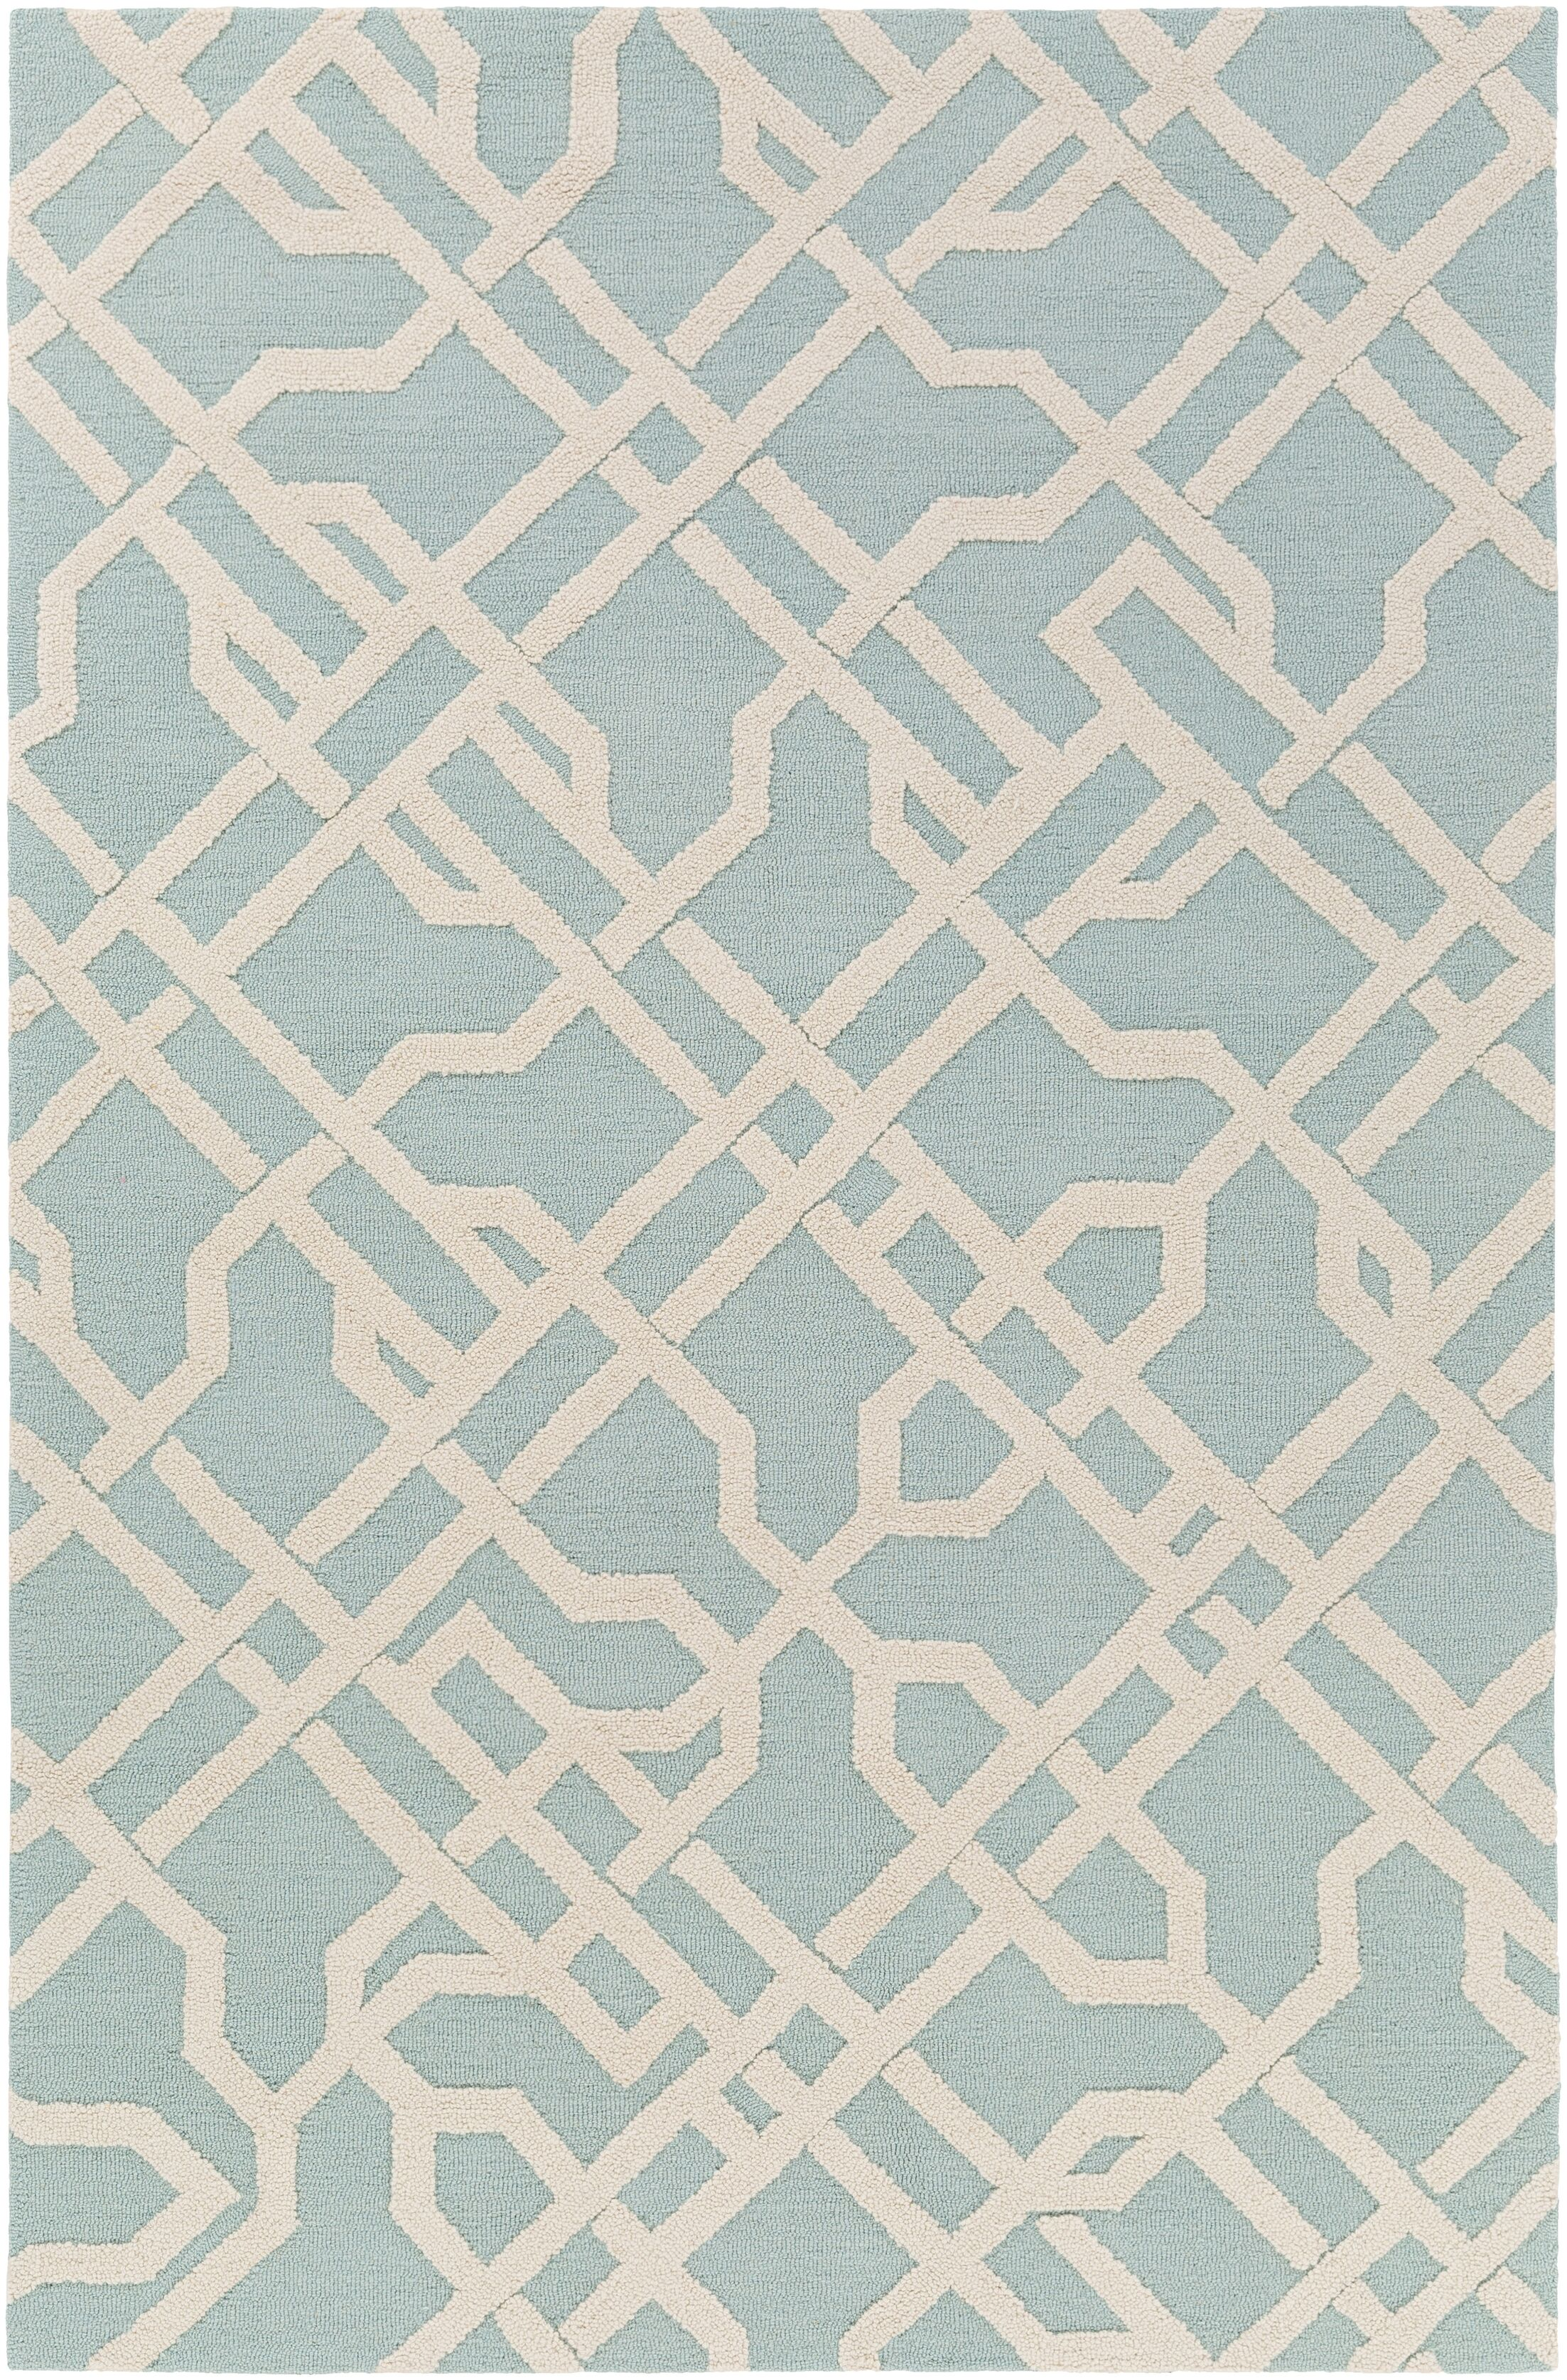 Daigle Hand-Crafted Blue Area Rug Rug Size: Rectangle 7'6